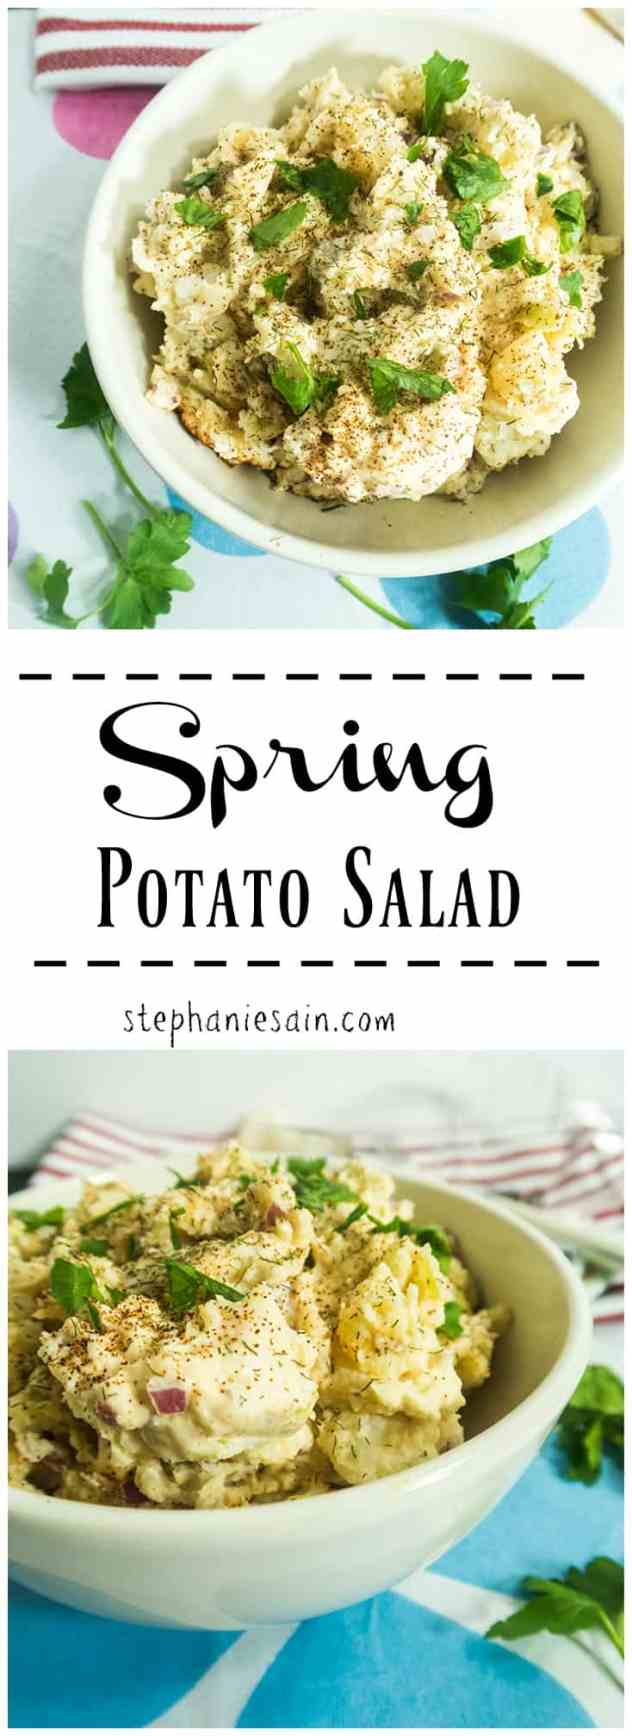 Spring Potato Salad is the perfect easy to prepare salad only requiring a few ingredients. Great for cookouts and gatherings. Vegetarian and Gluten Free.